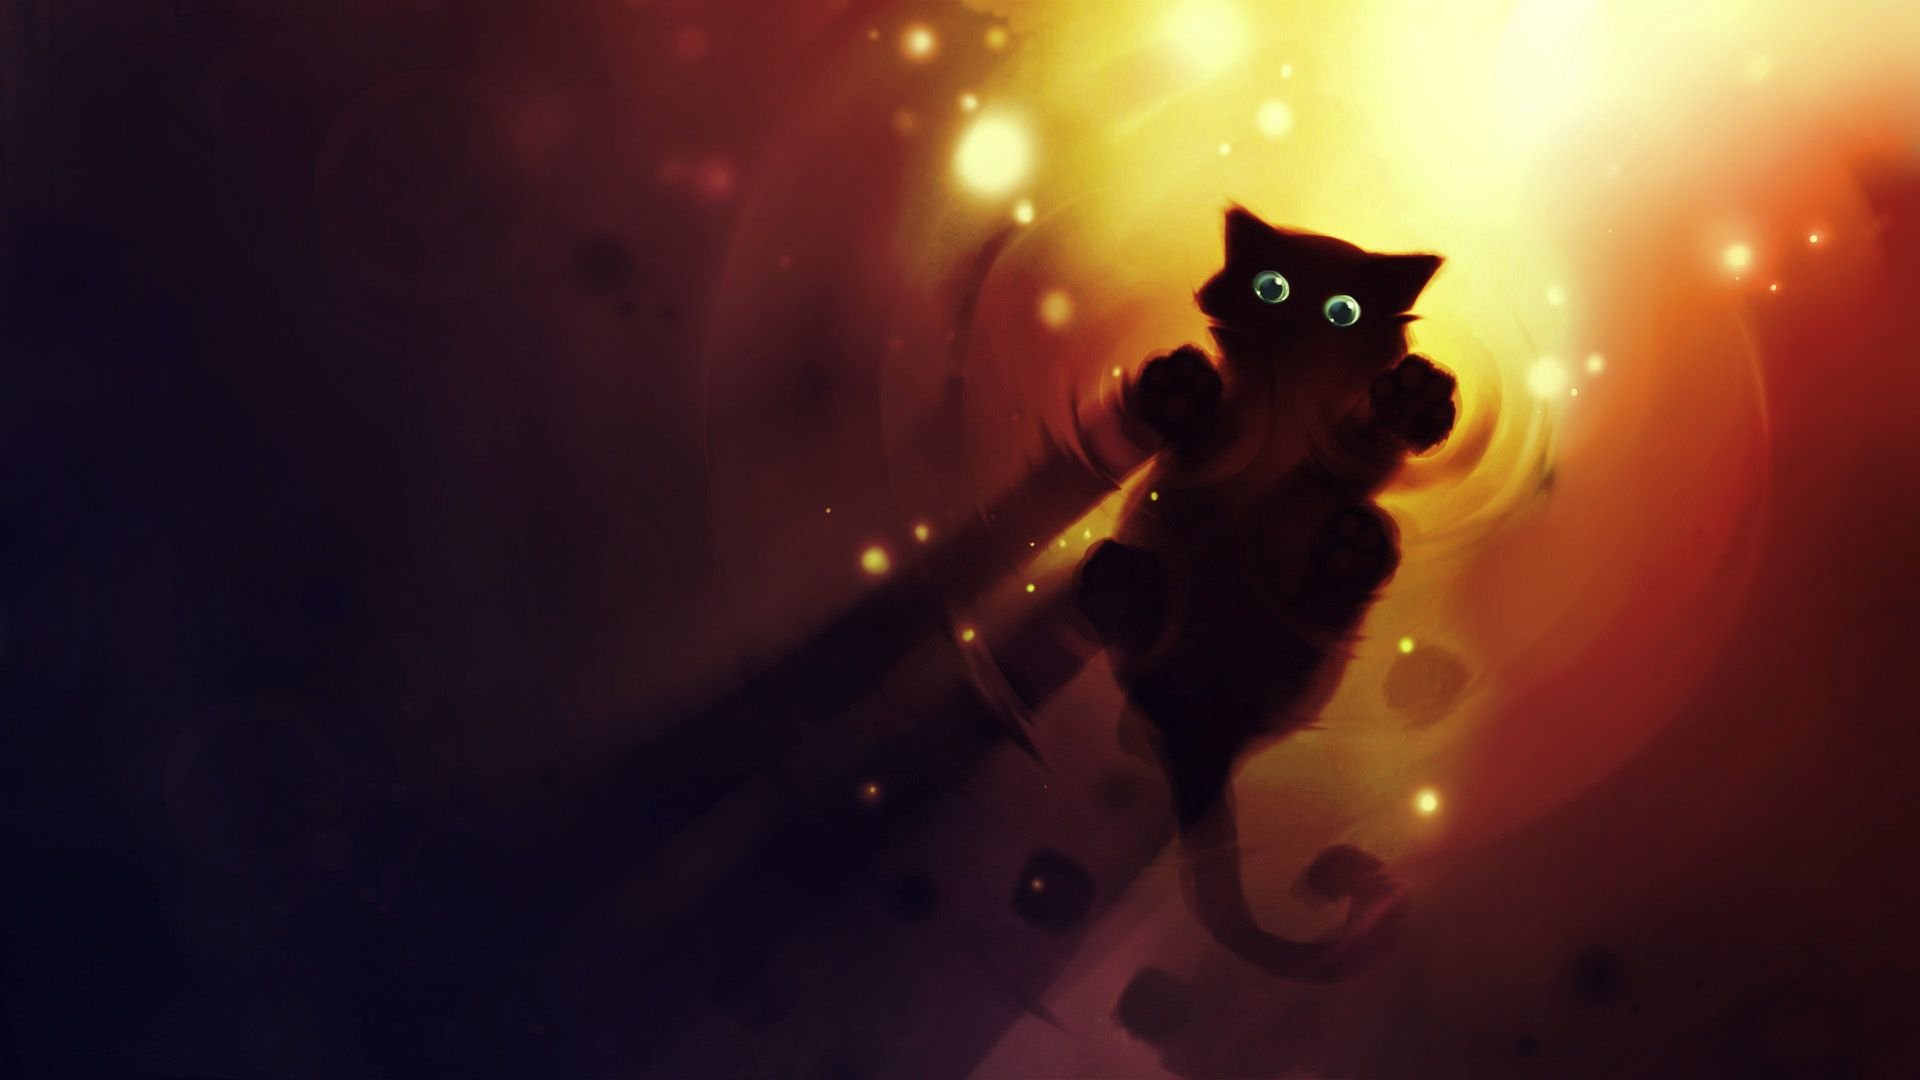 Google themes kittens - Search